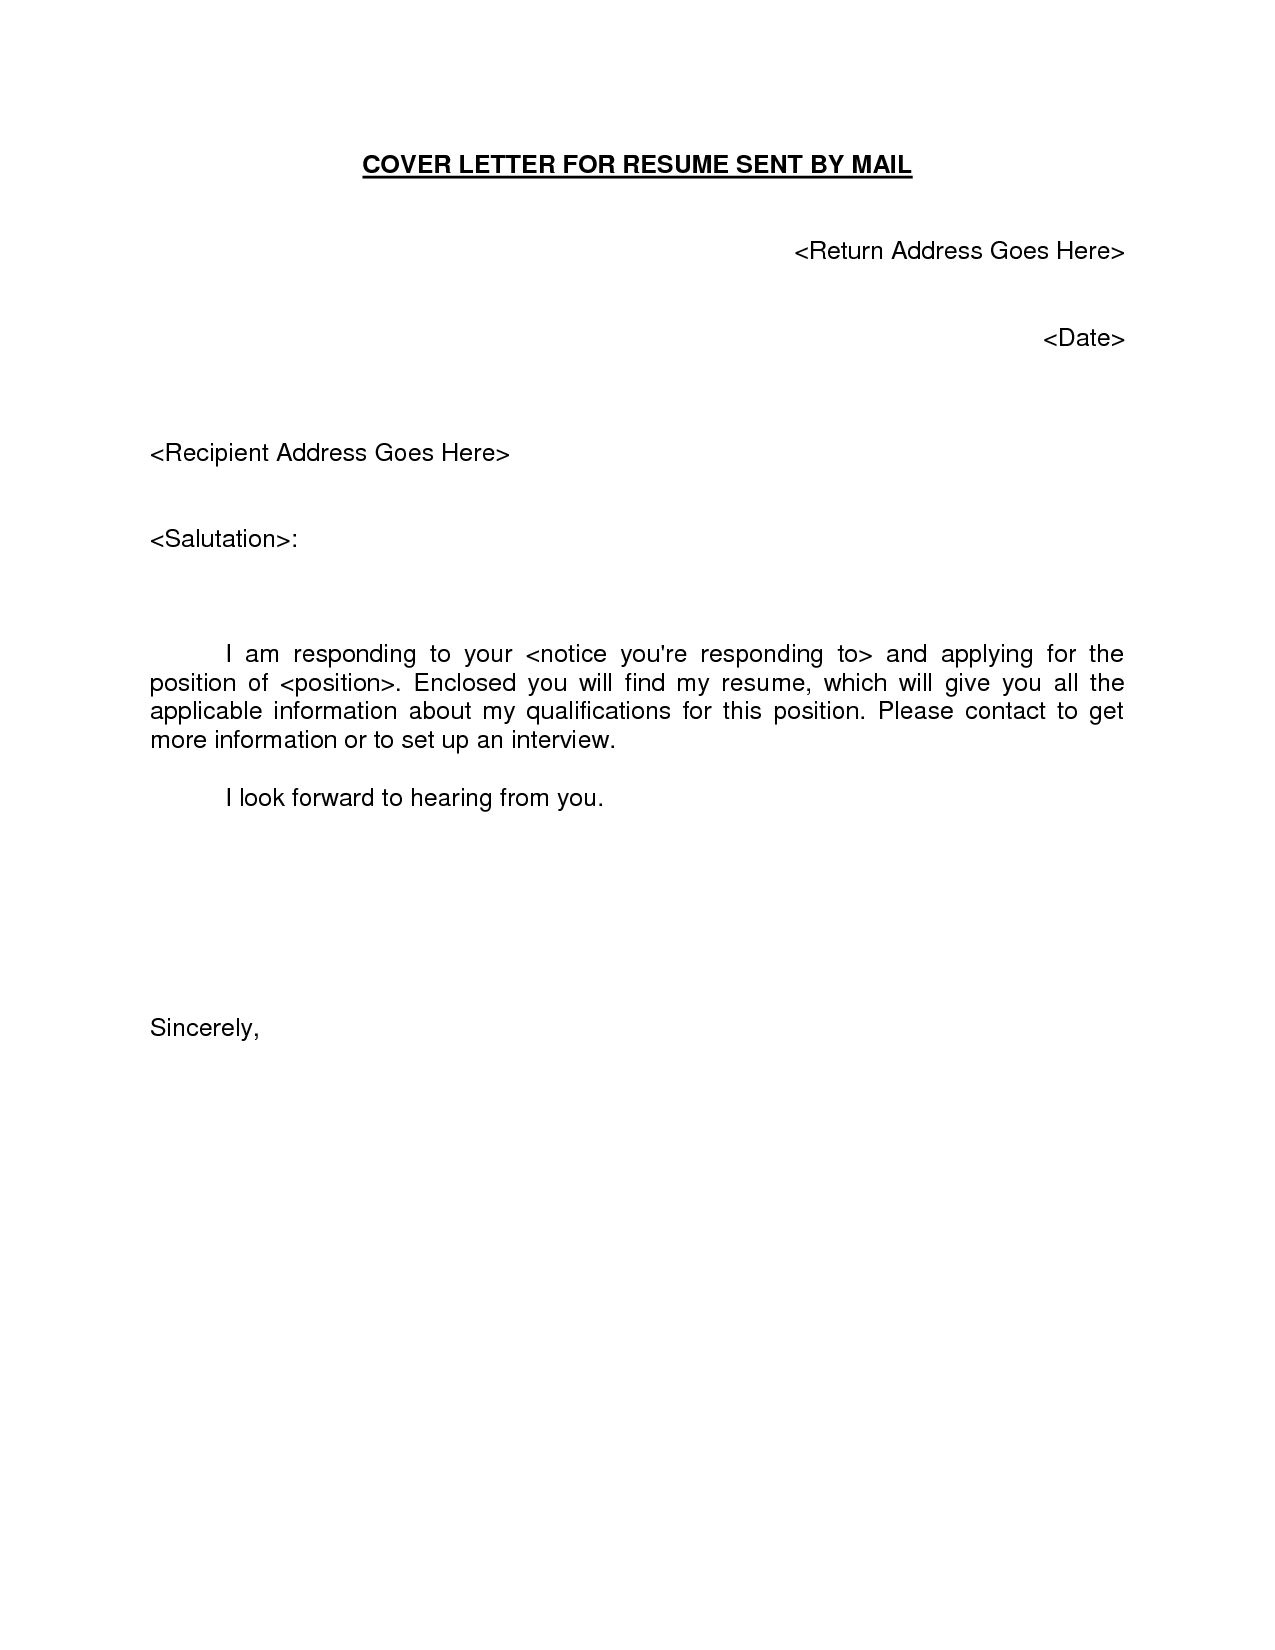 Email Resume Cover Letter Email Resume Cover Letter Template Learnhowtoloseweight Net  News .